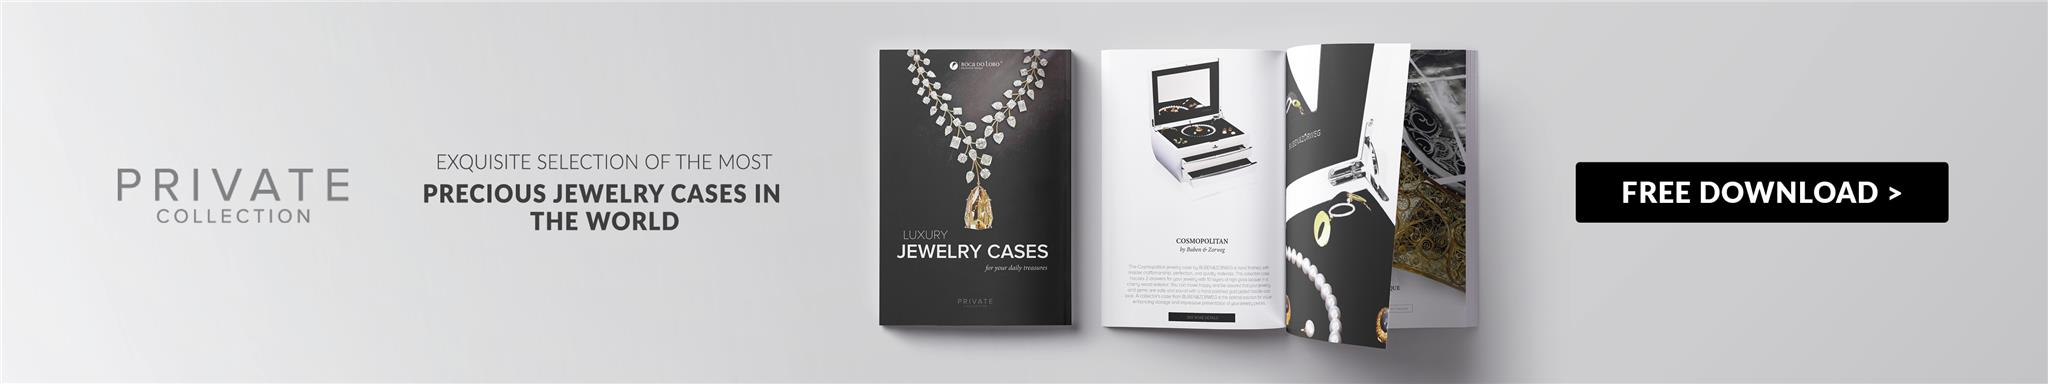 Jewelry Cases Ebook Boca do Lobo hba Inside The HBA Residential's New Interior Design Project in Beijing precious jewelry cases in the world banner